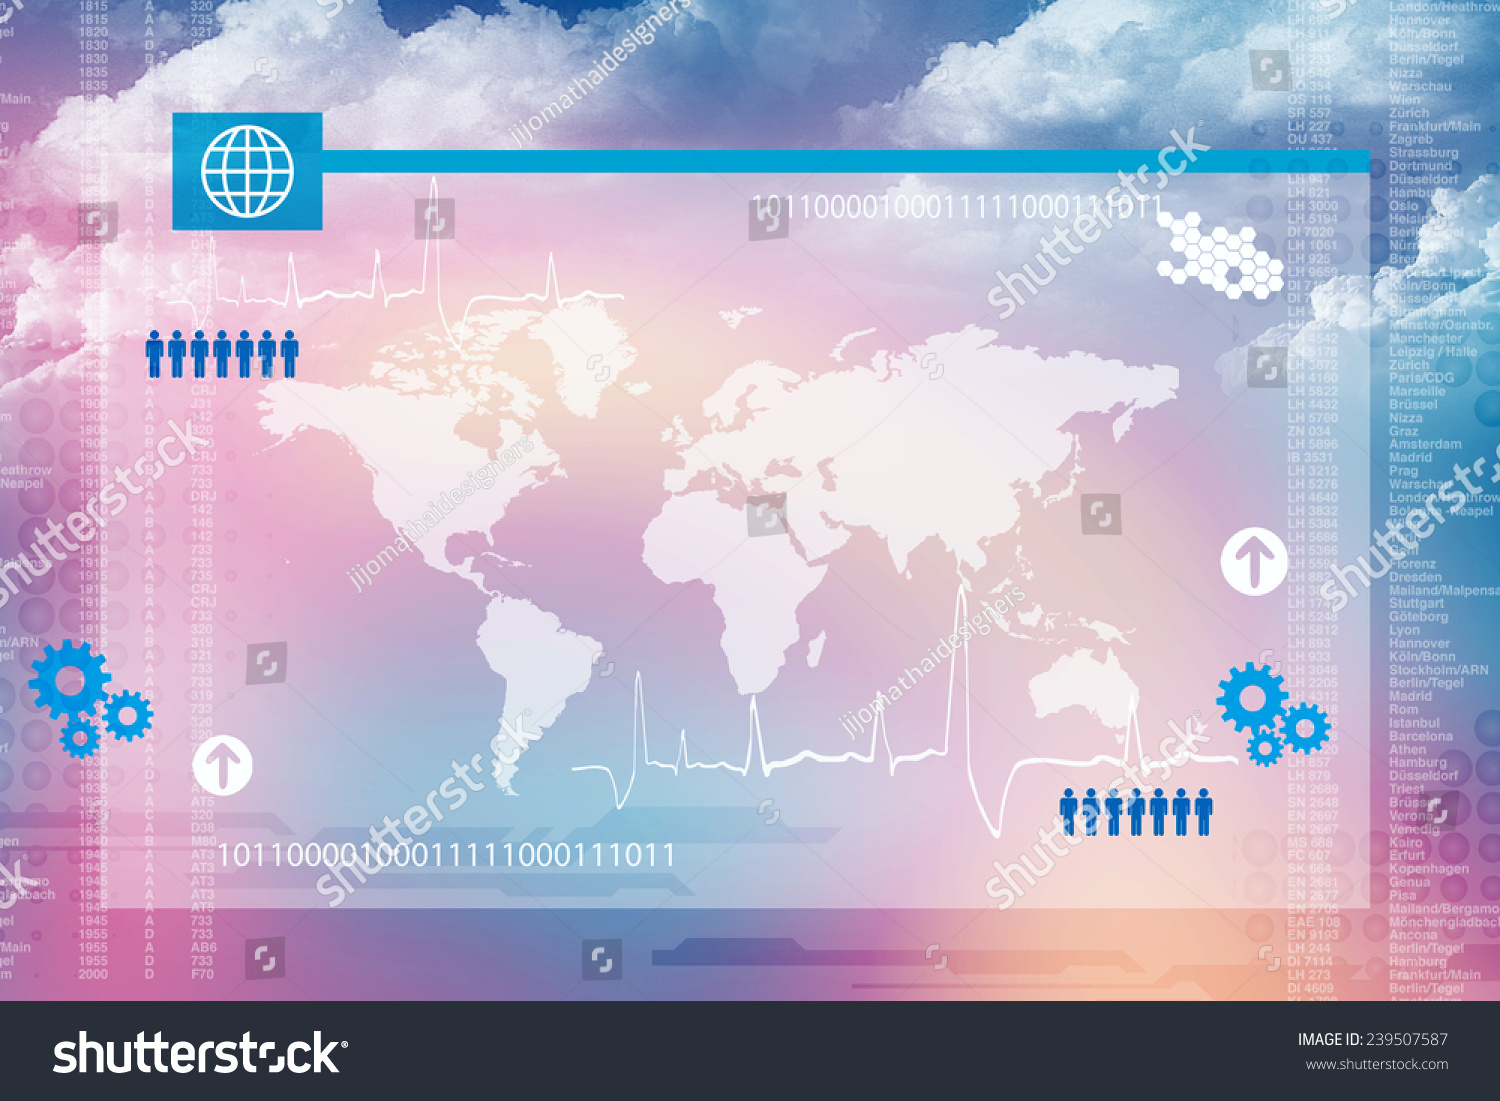 World Map Business Background Stockillustration 239507587 – Shutterstock